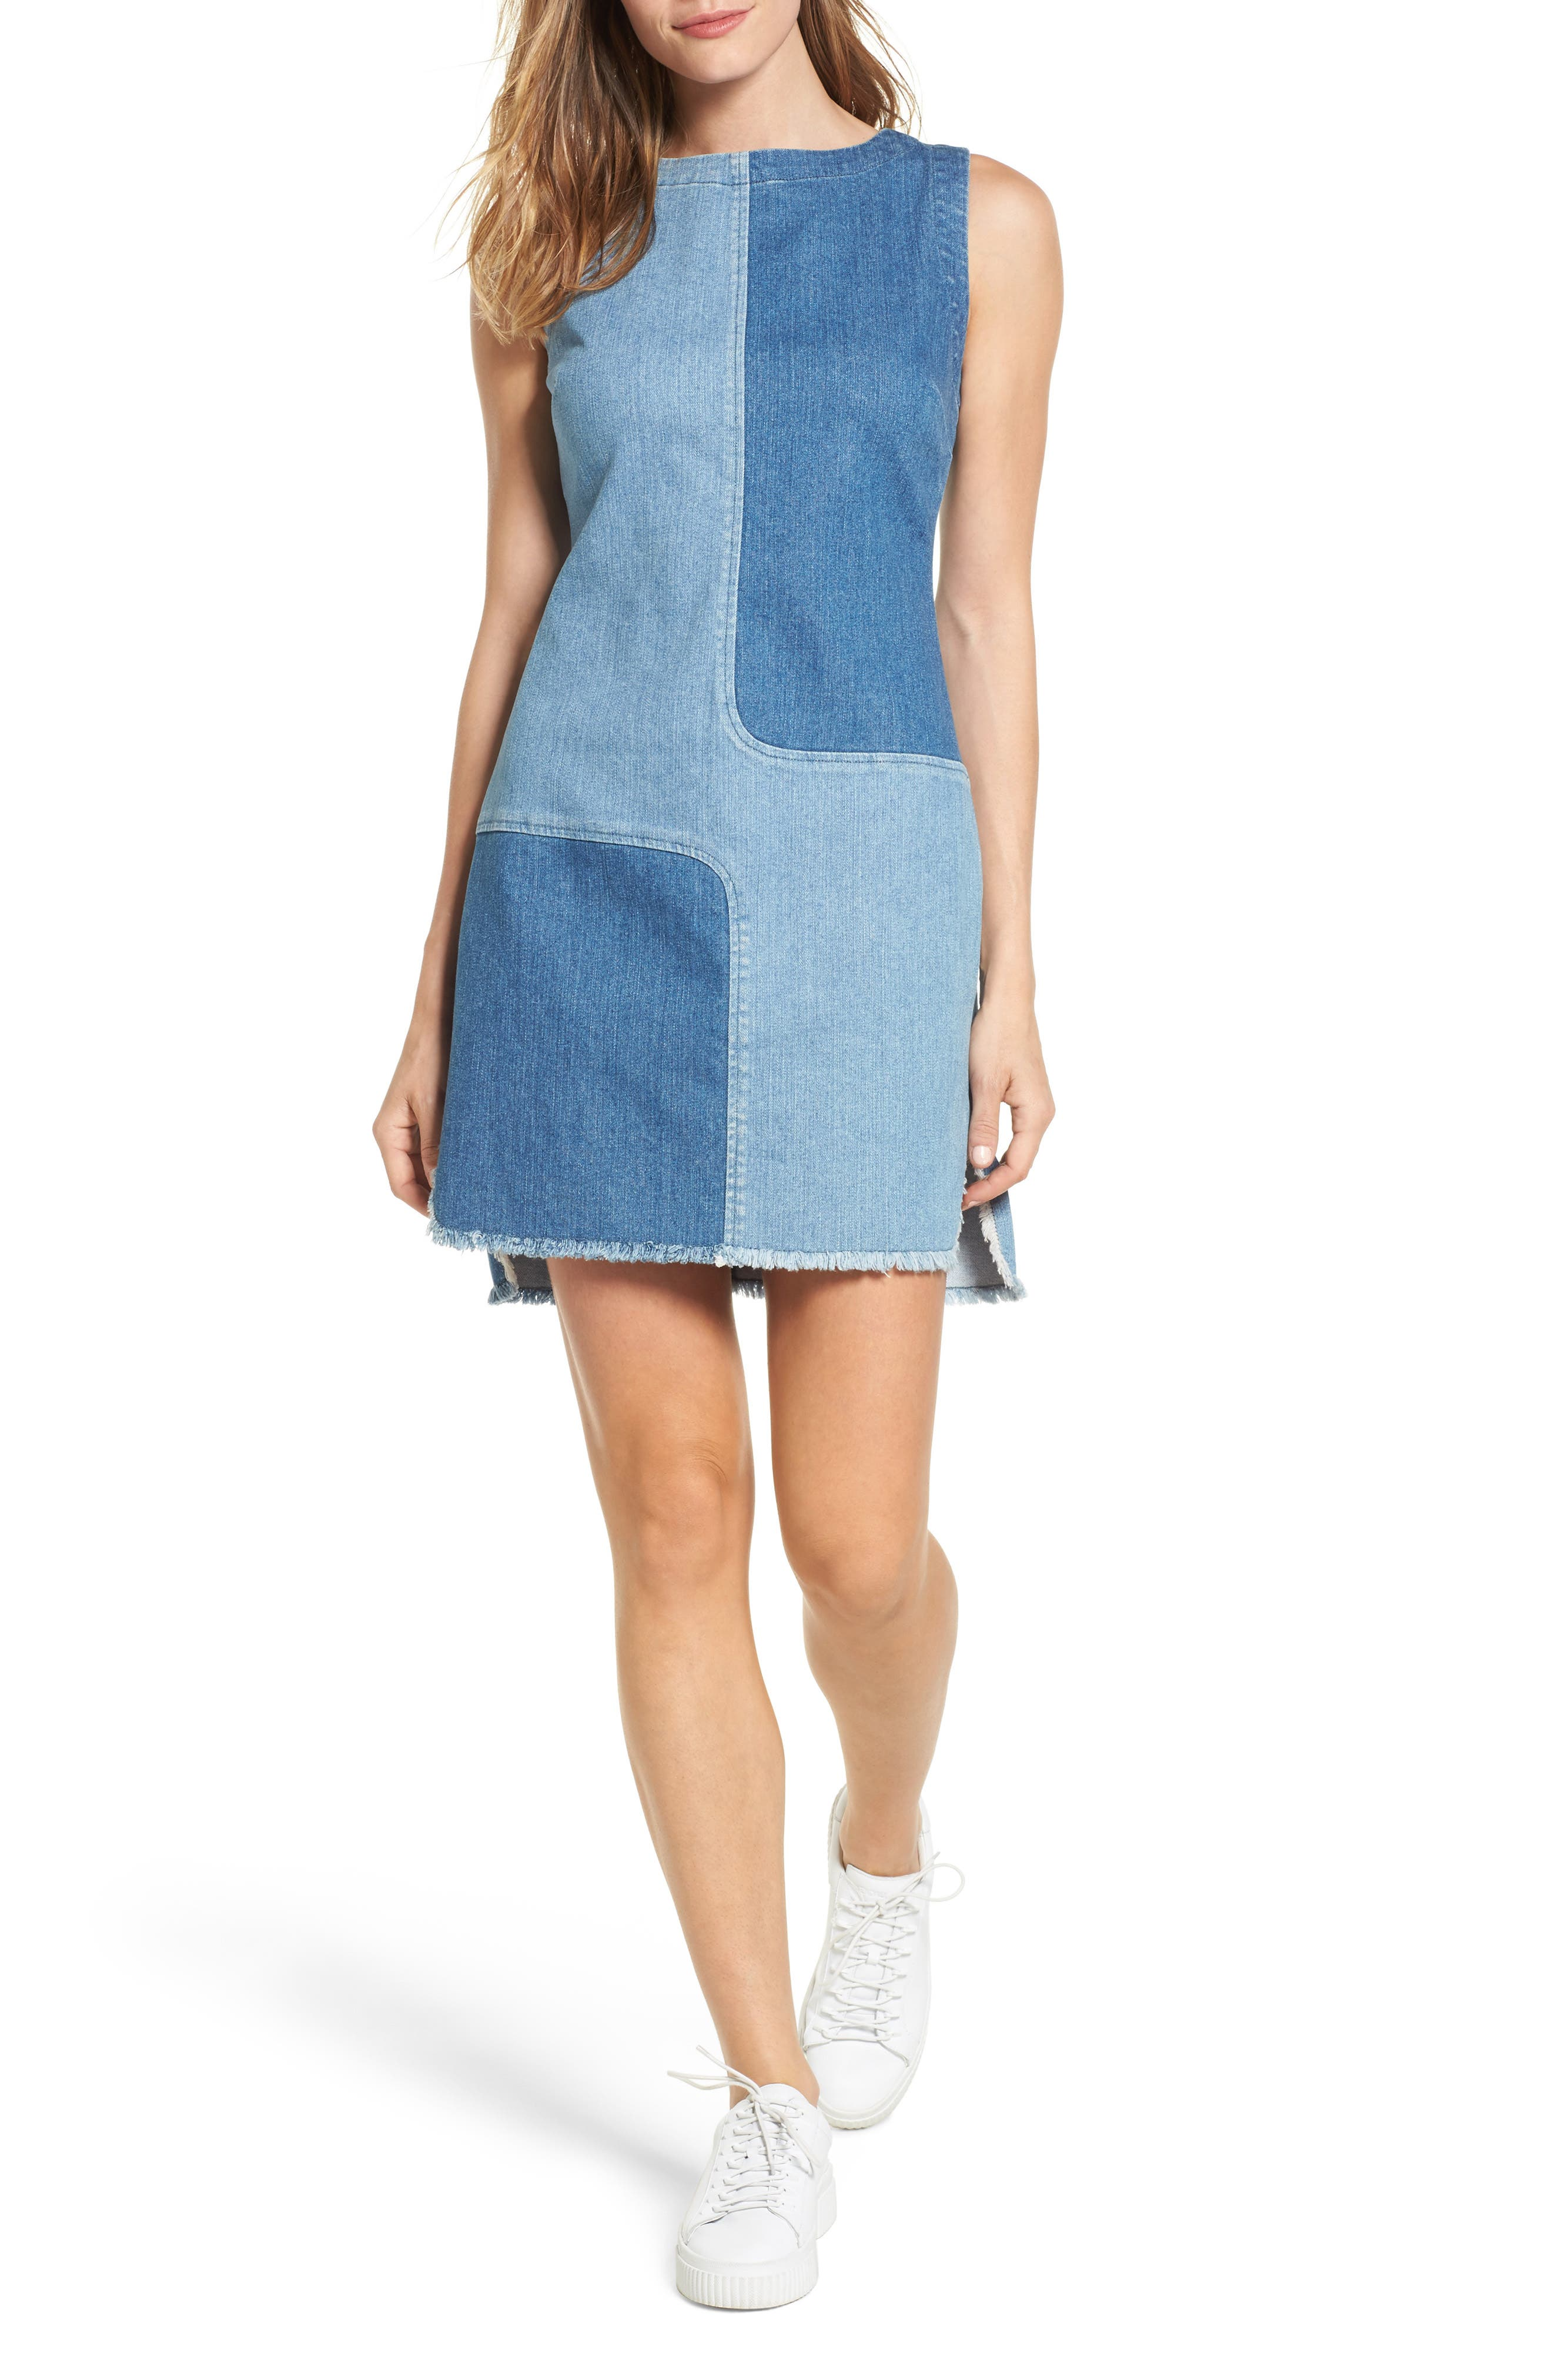 AG The Indie Two Tone Denim Dress